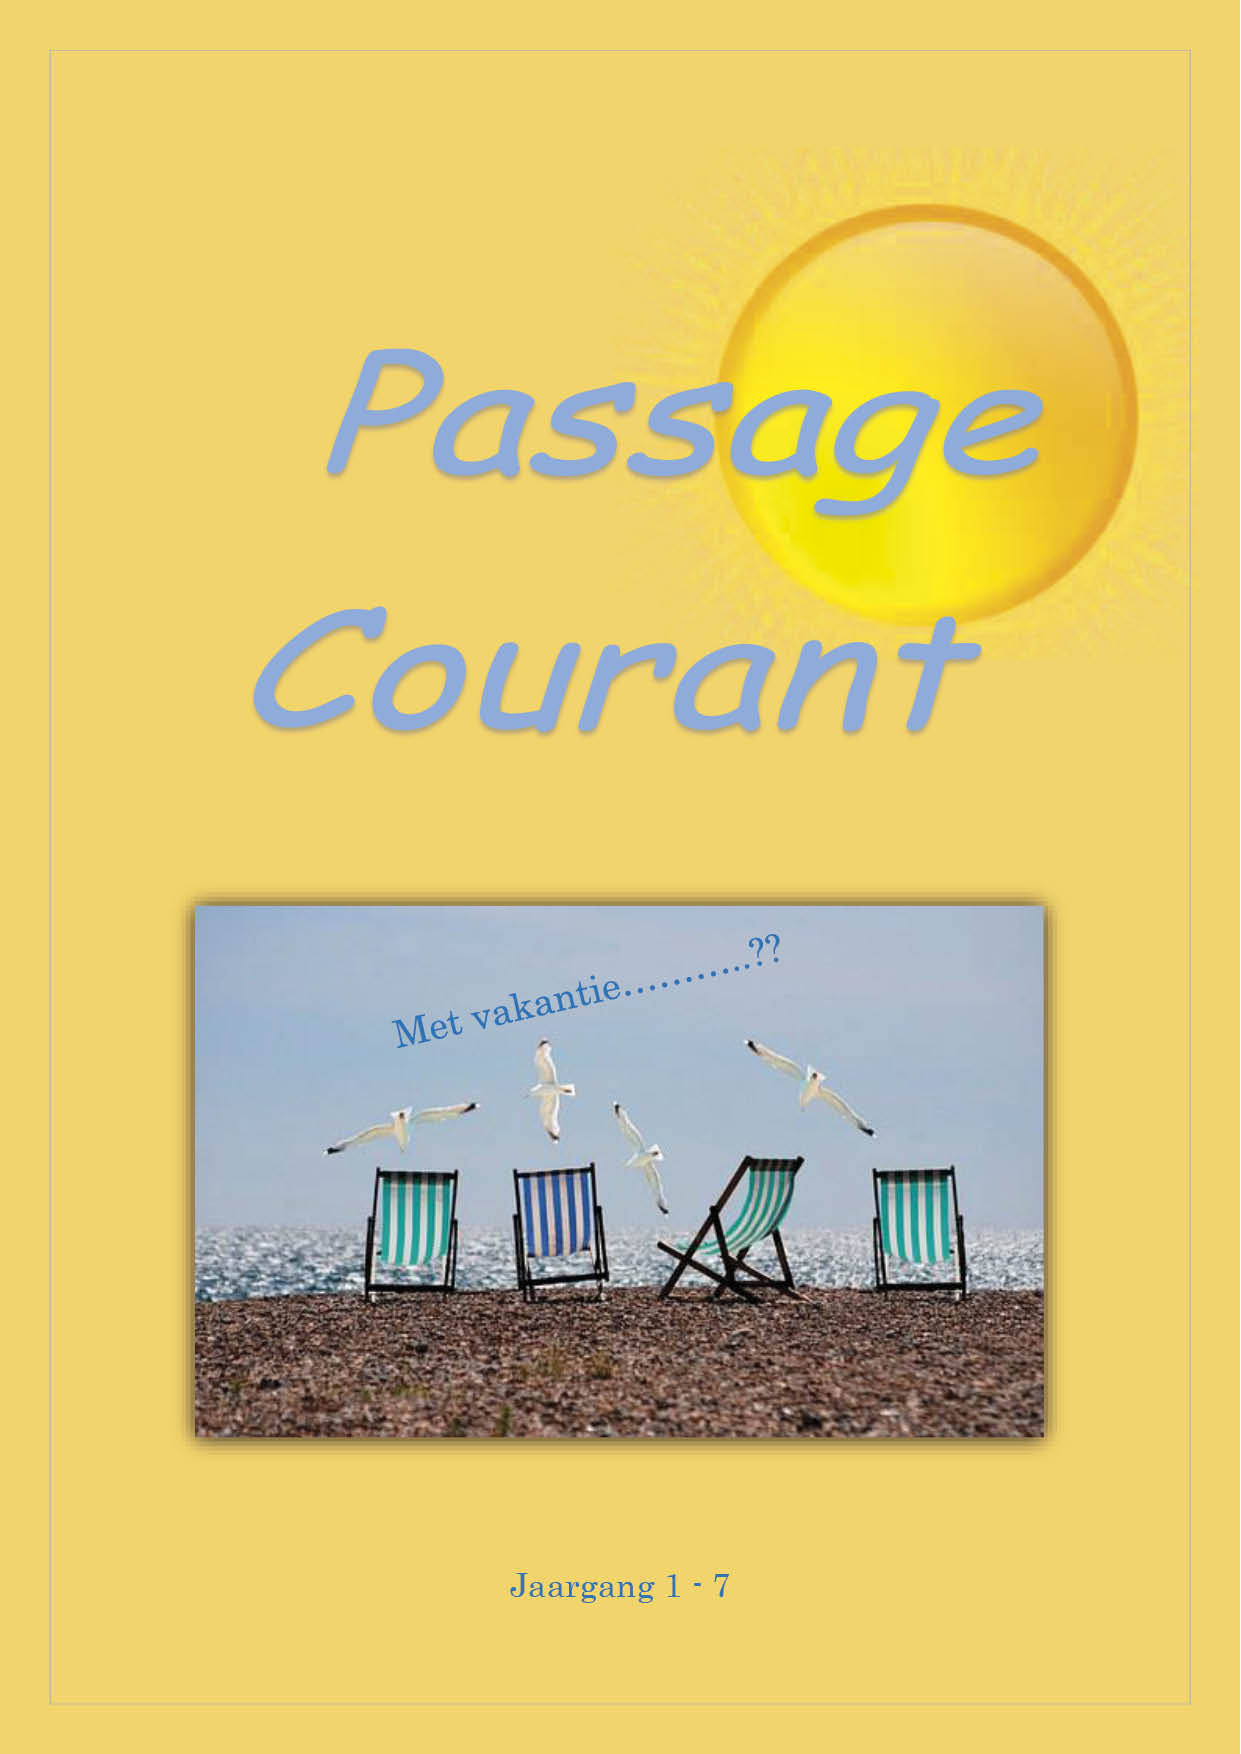 Passage courant 7 cover